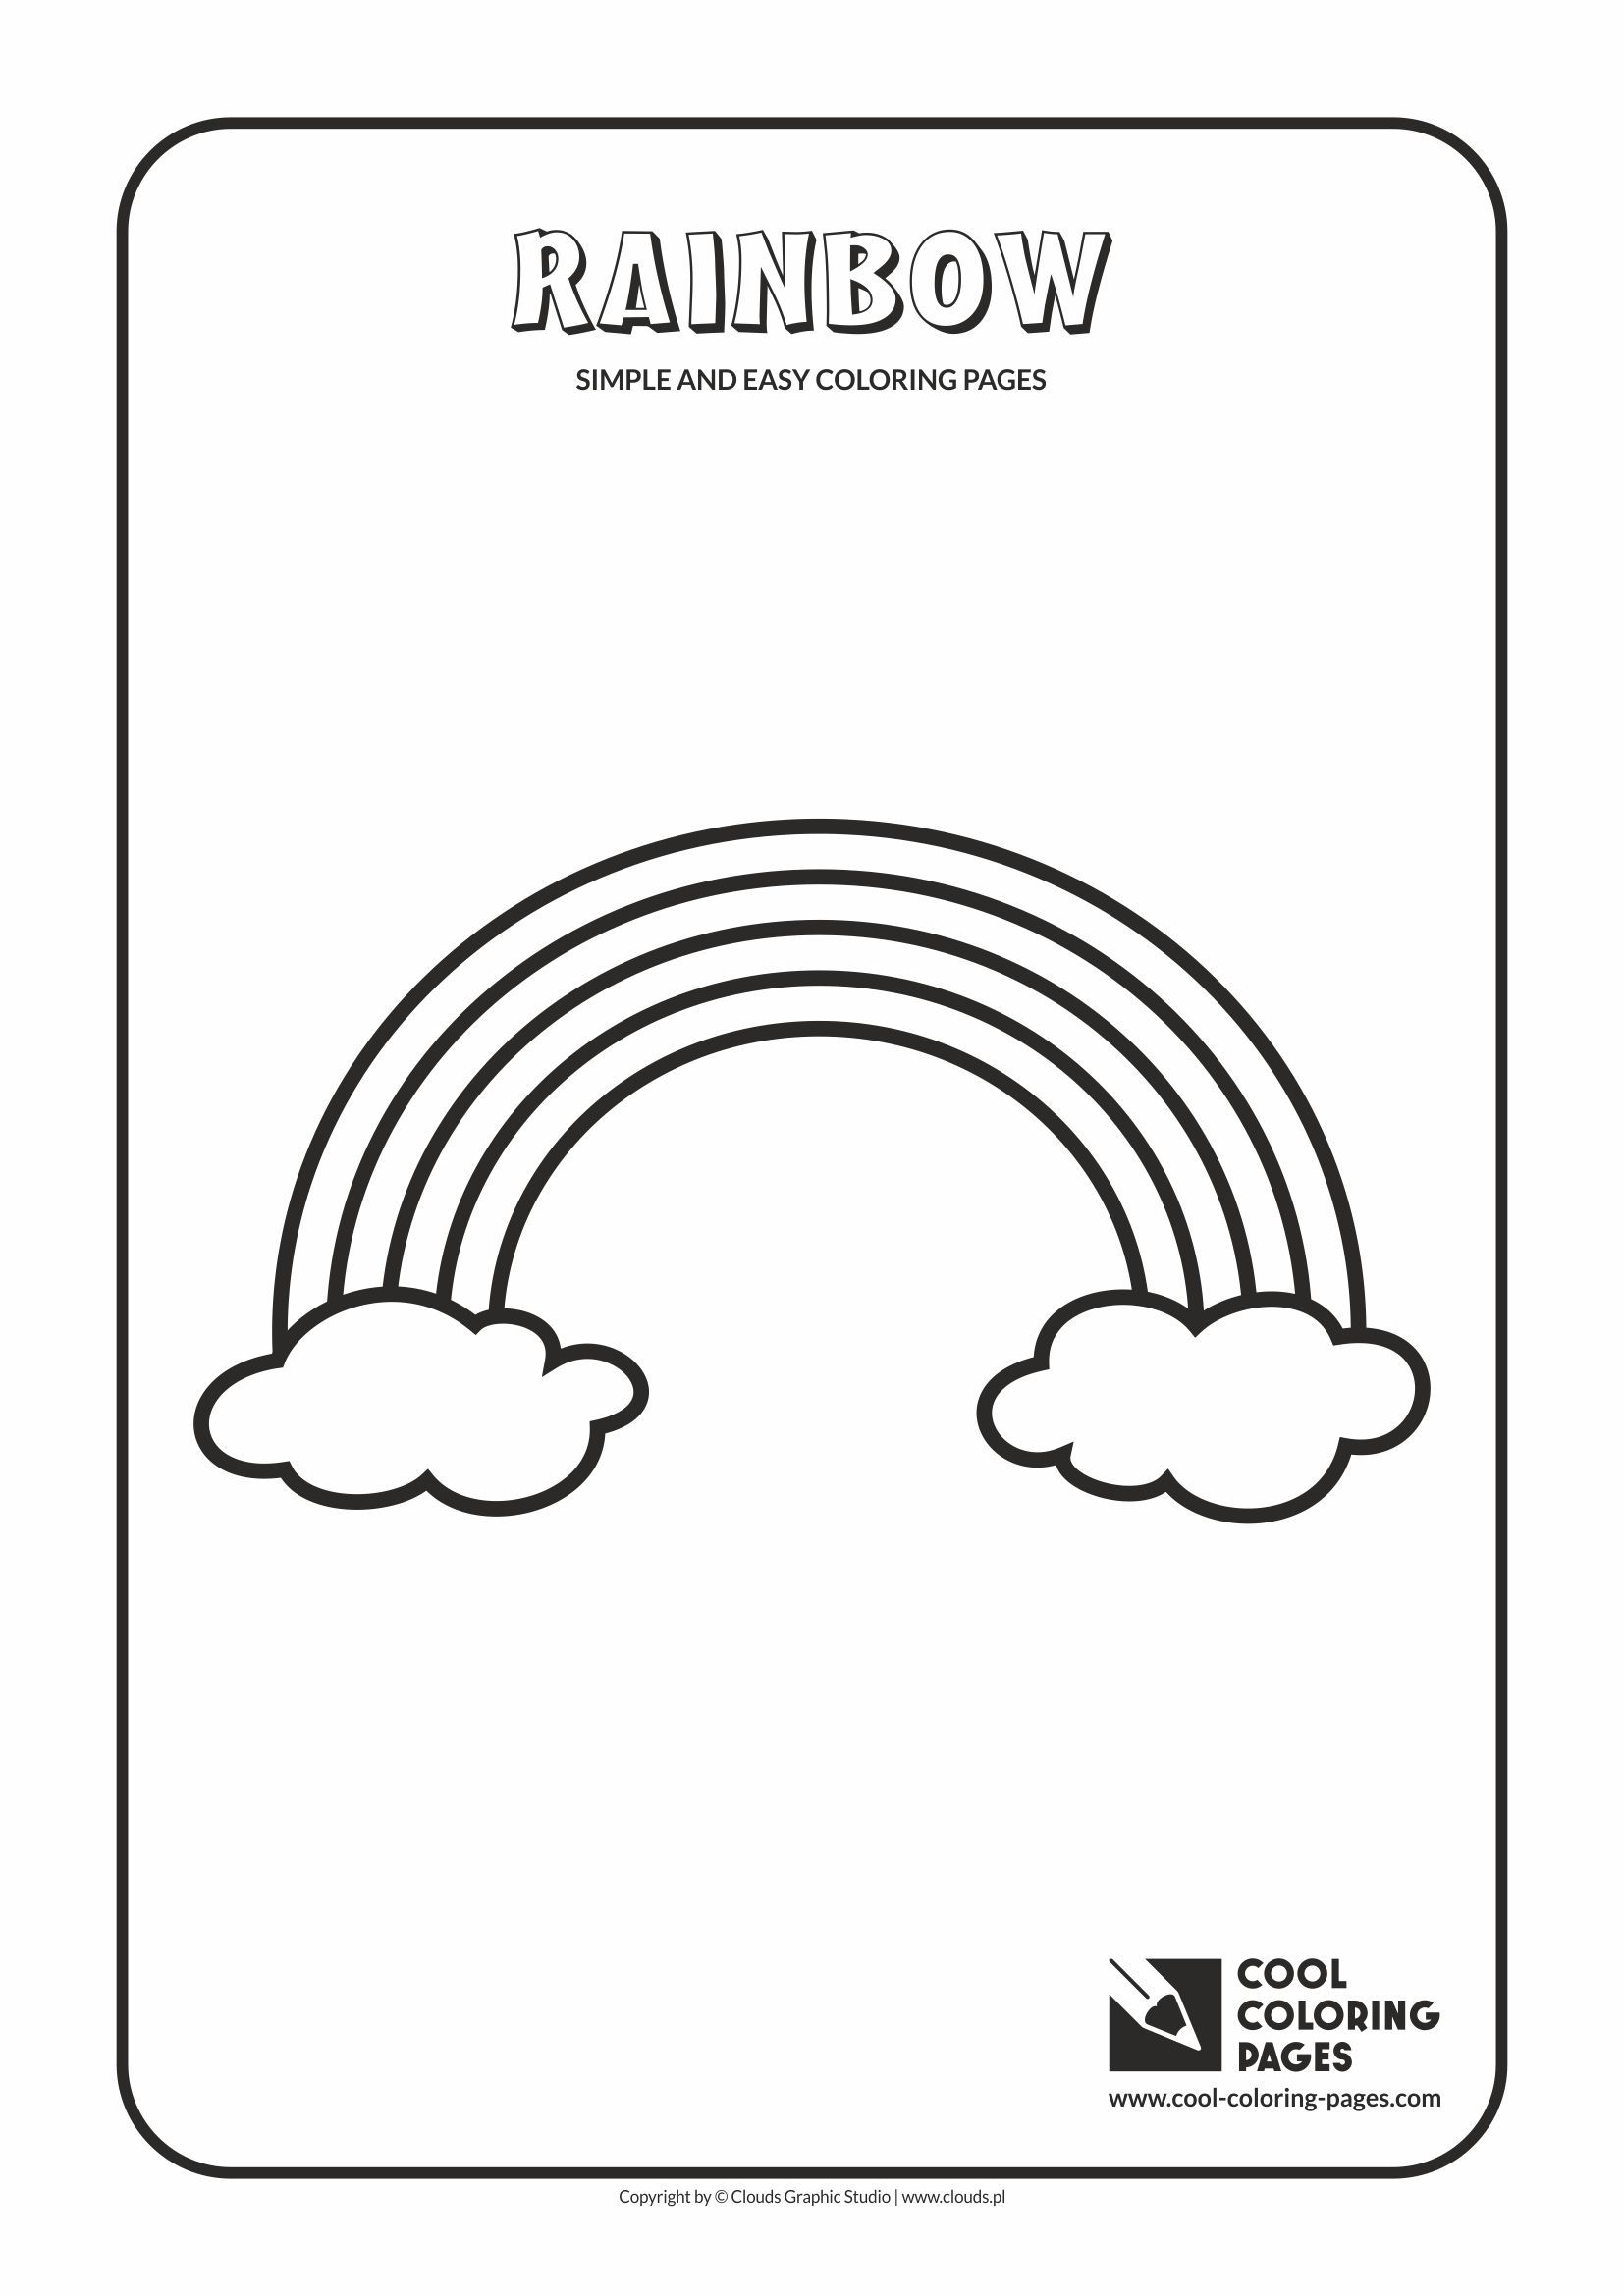 Simple and easy coloring pages for toddlers - Rainbow | Simple and ...